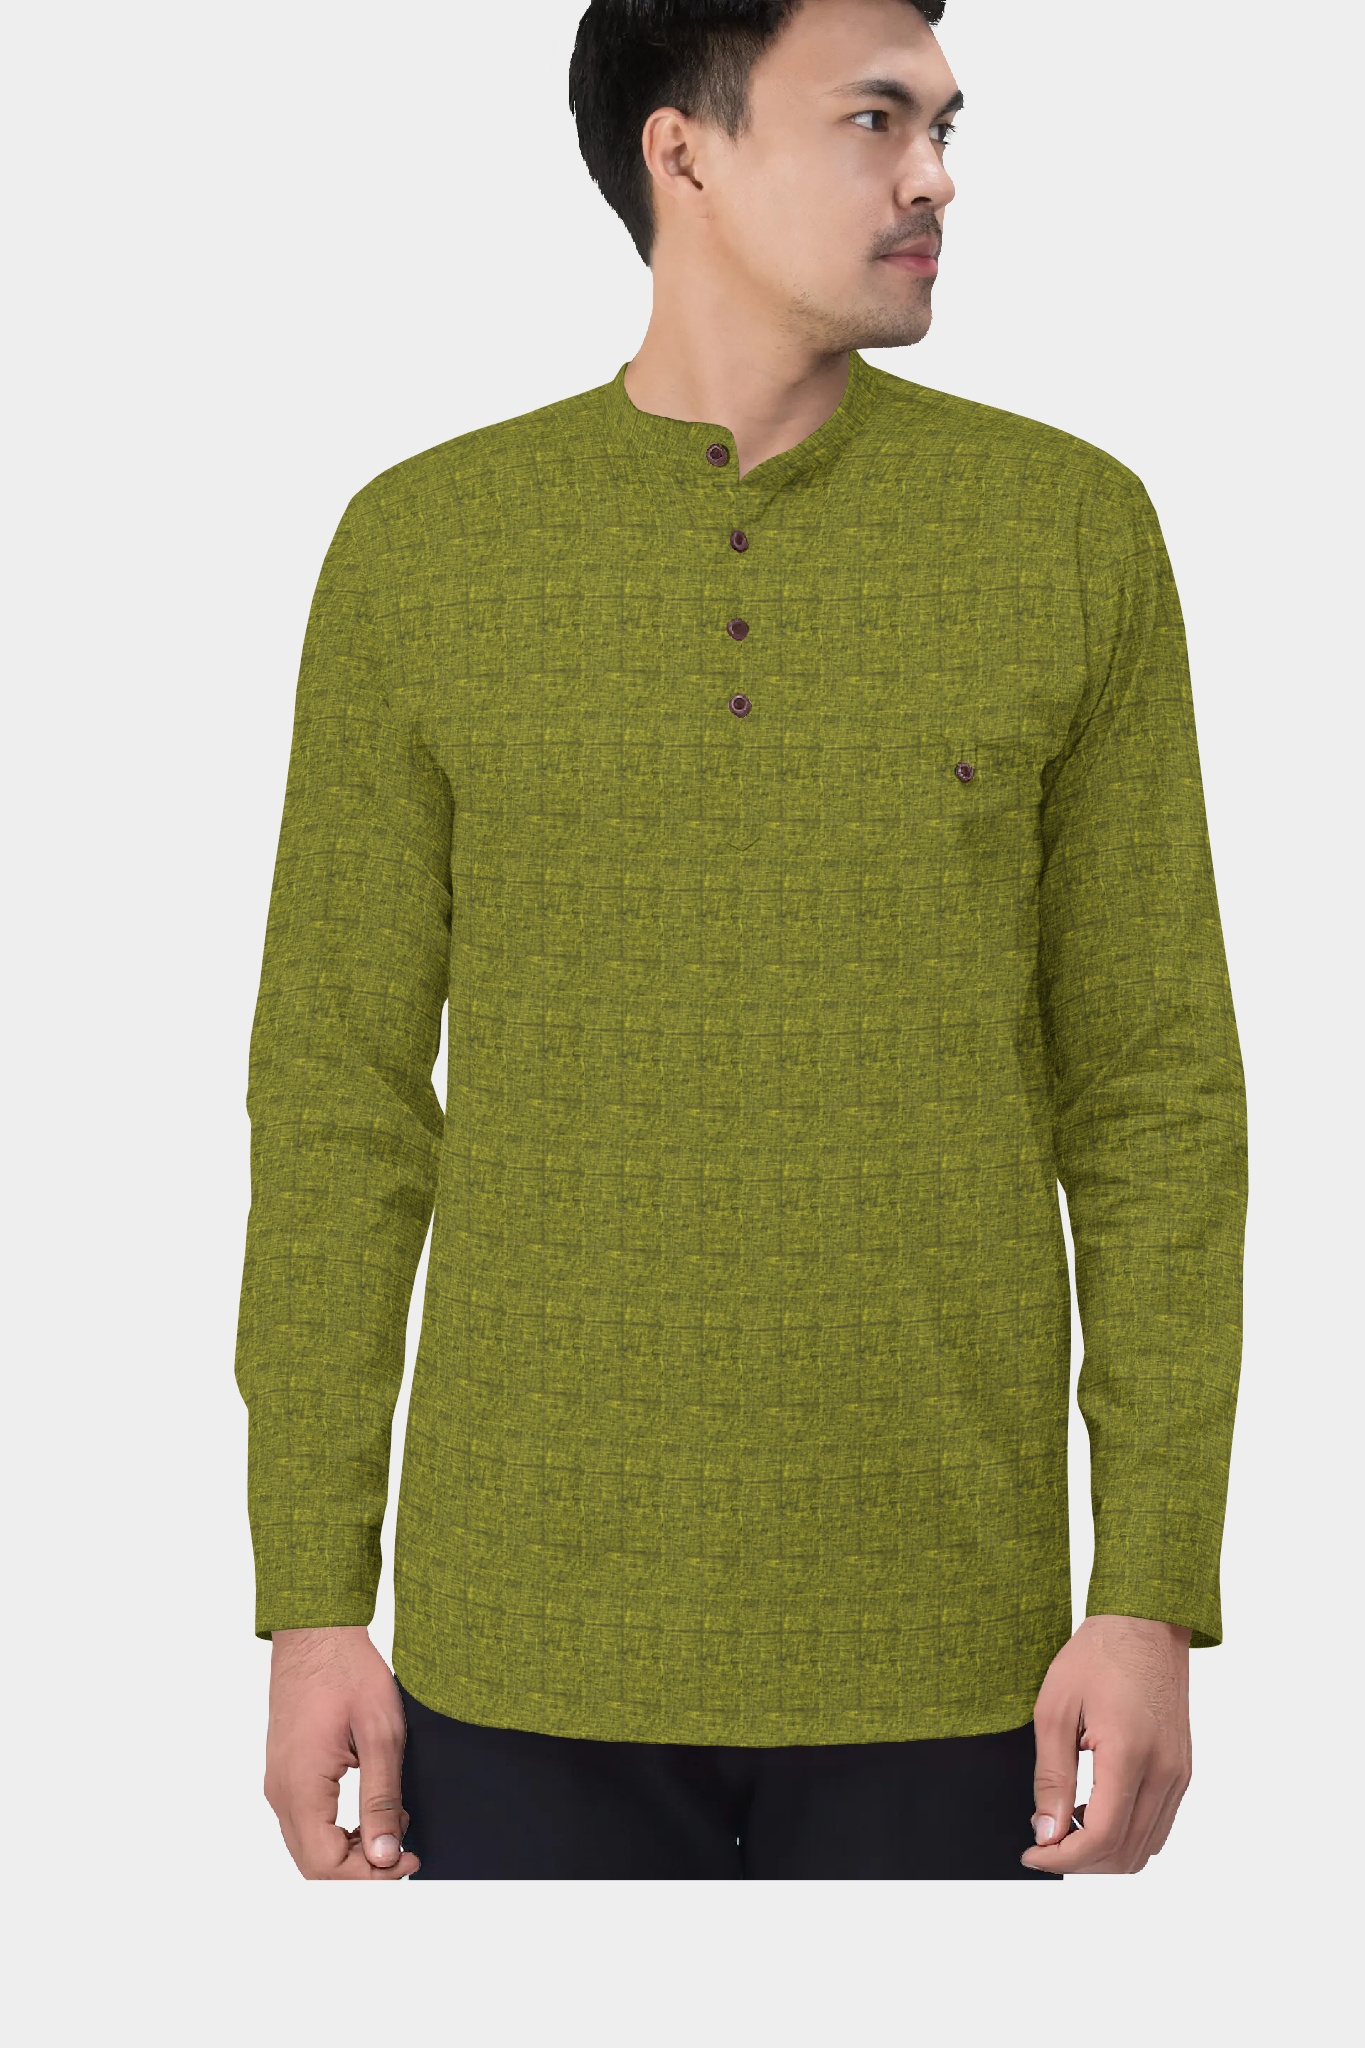 /home/customer/www/fabartcraft.com/public_html/uploadshttps://www.shopolics.com/uploads/images/medium/Olive-Green-Black-Cotton-Short-Kurta-35431.jpg